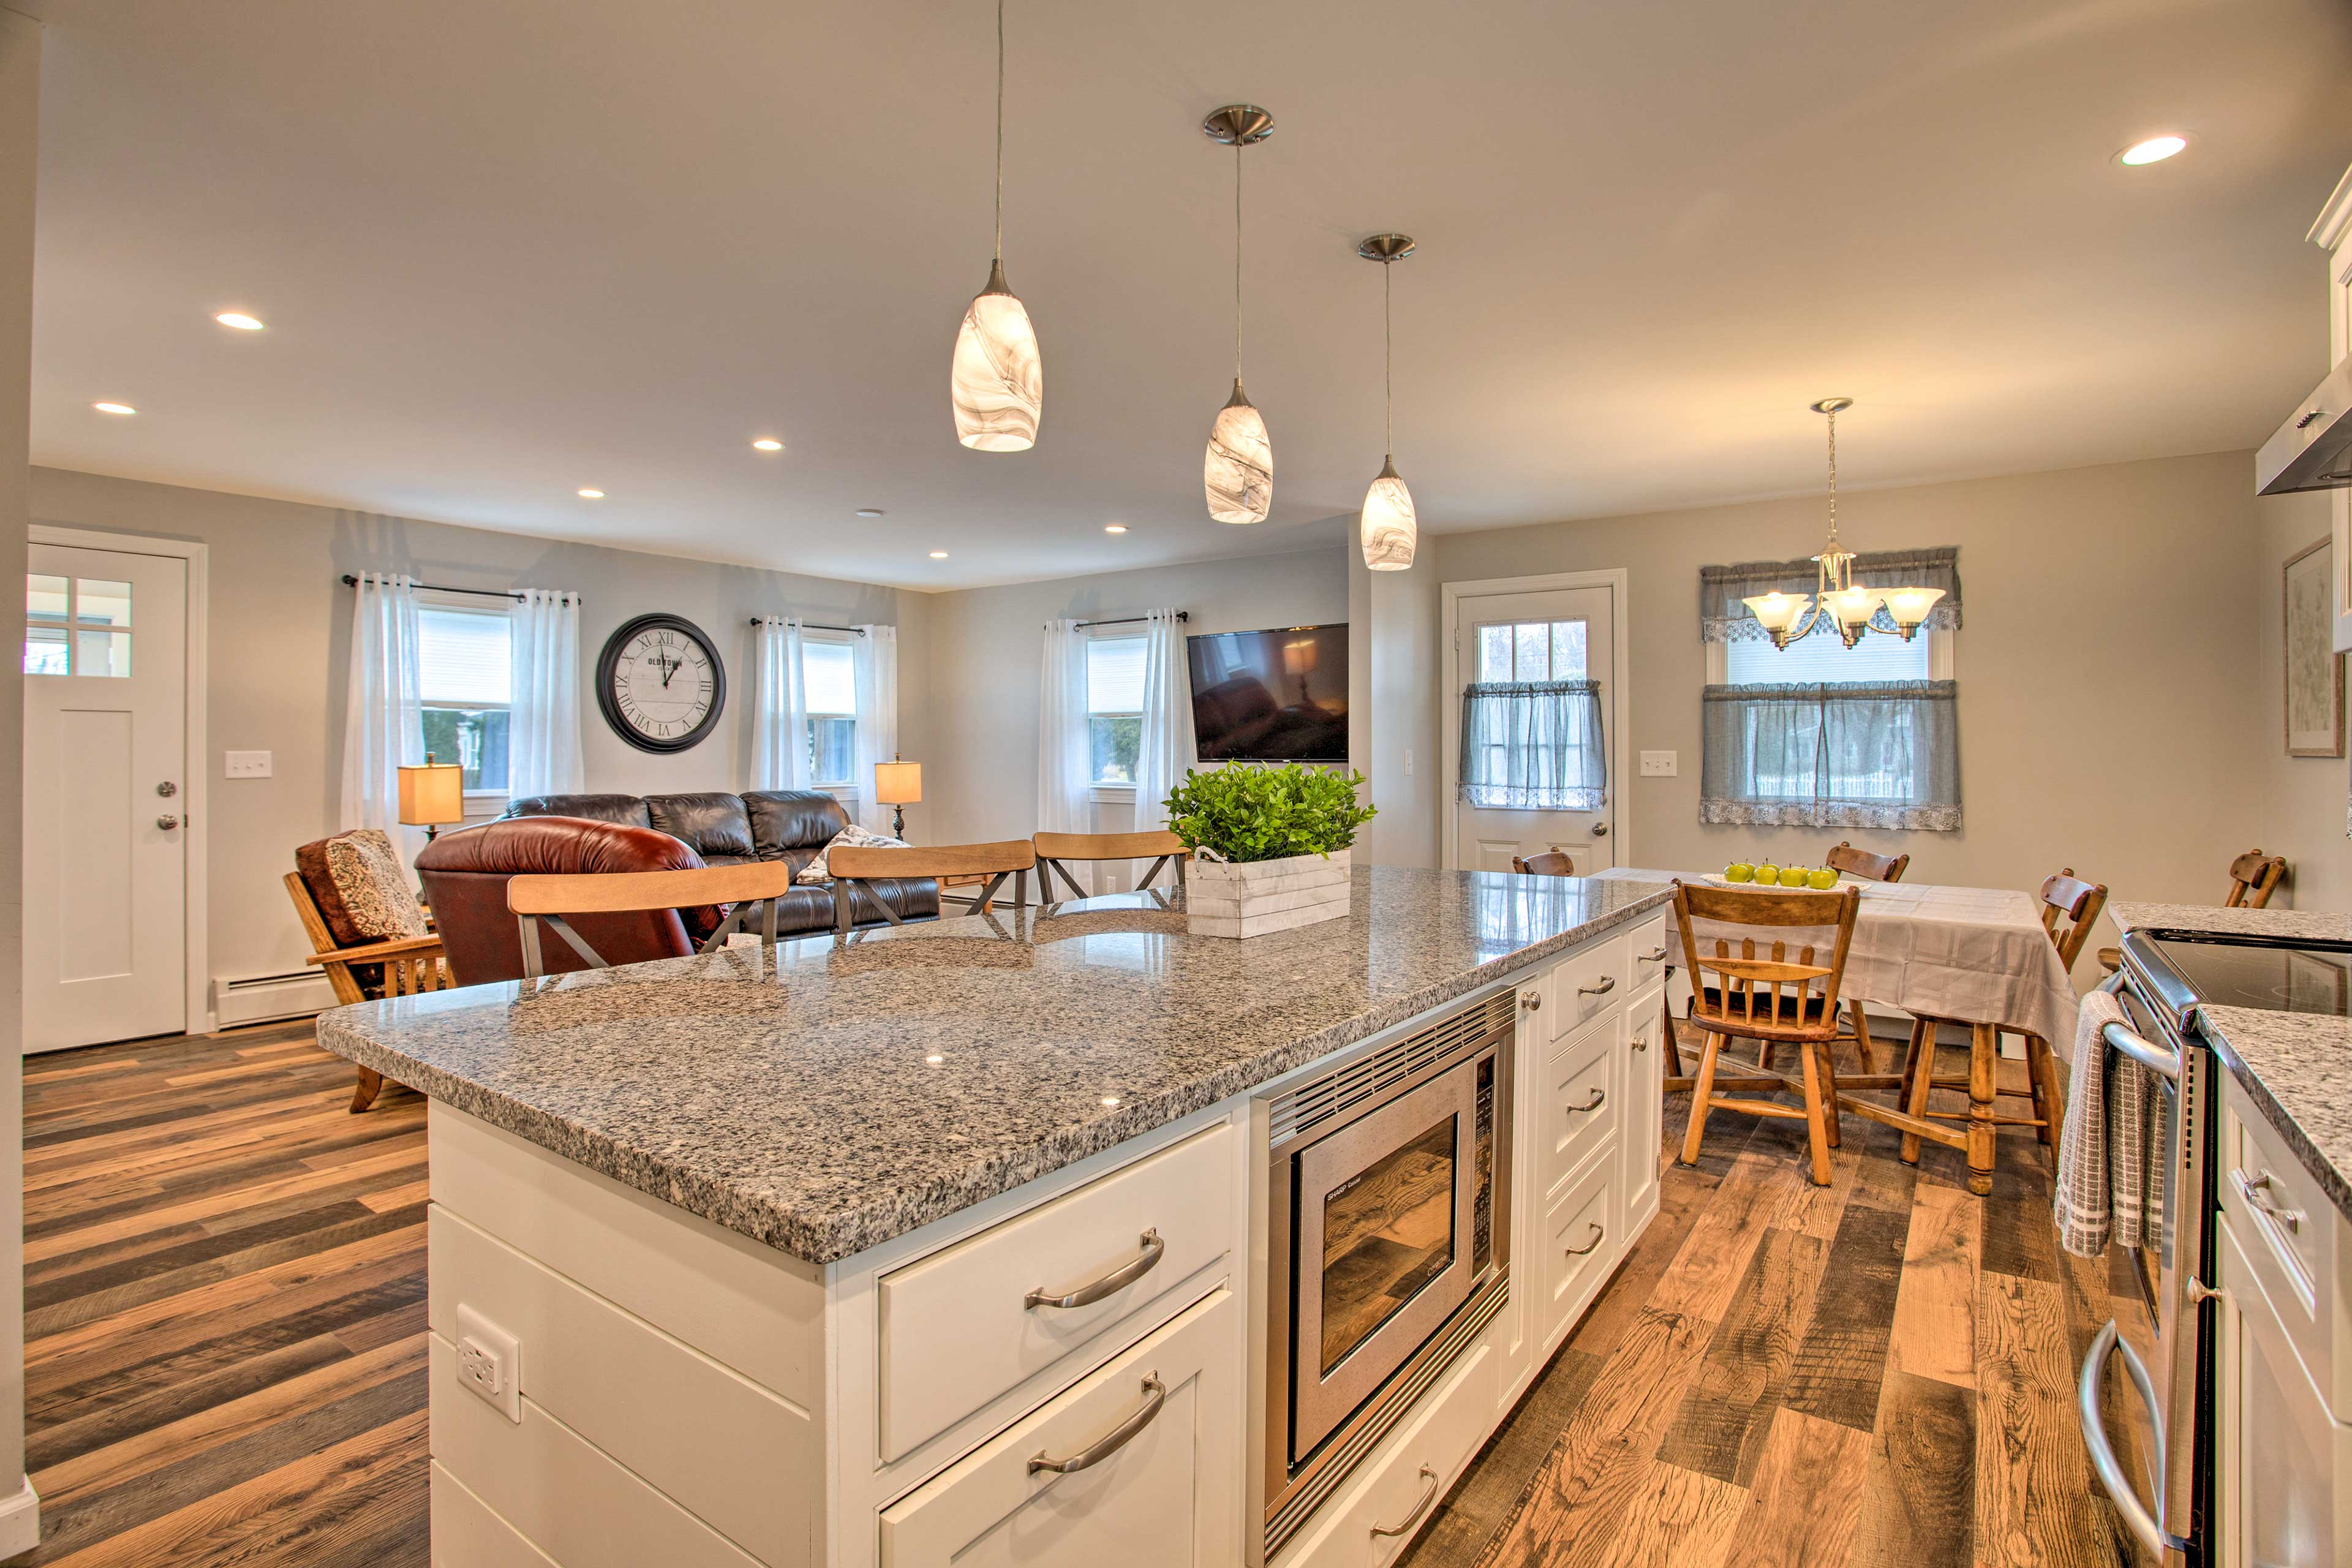 Easily prepare all your favorite meals in this modern kitchen.